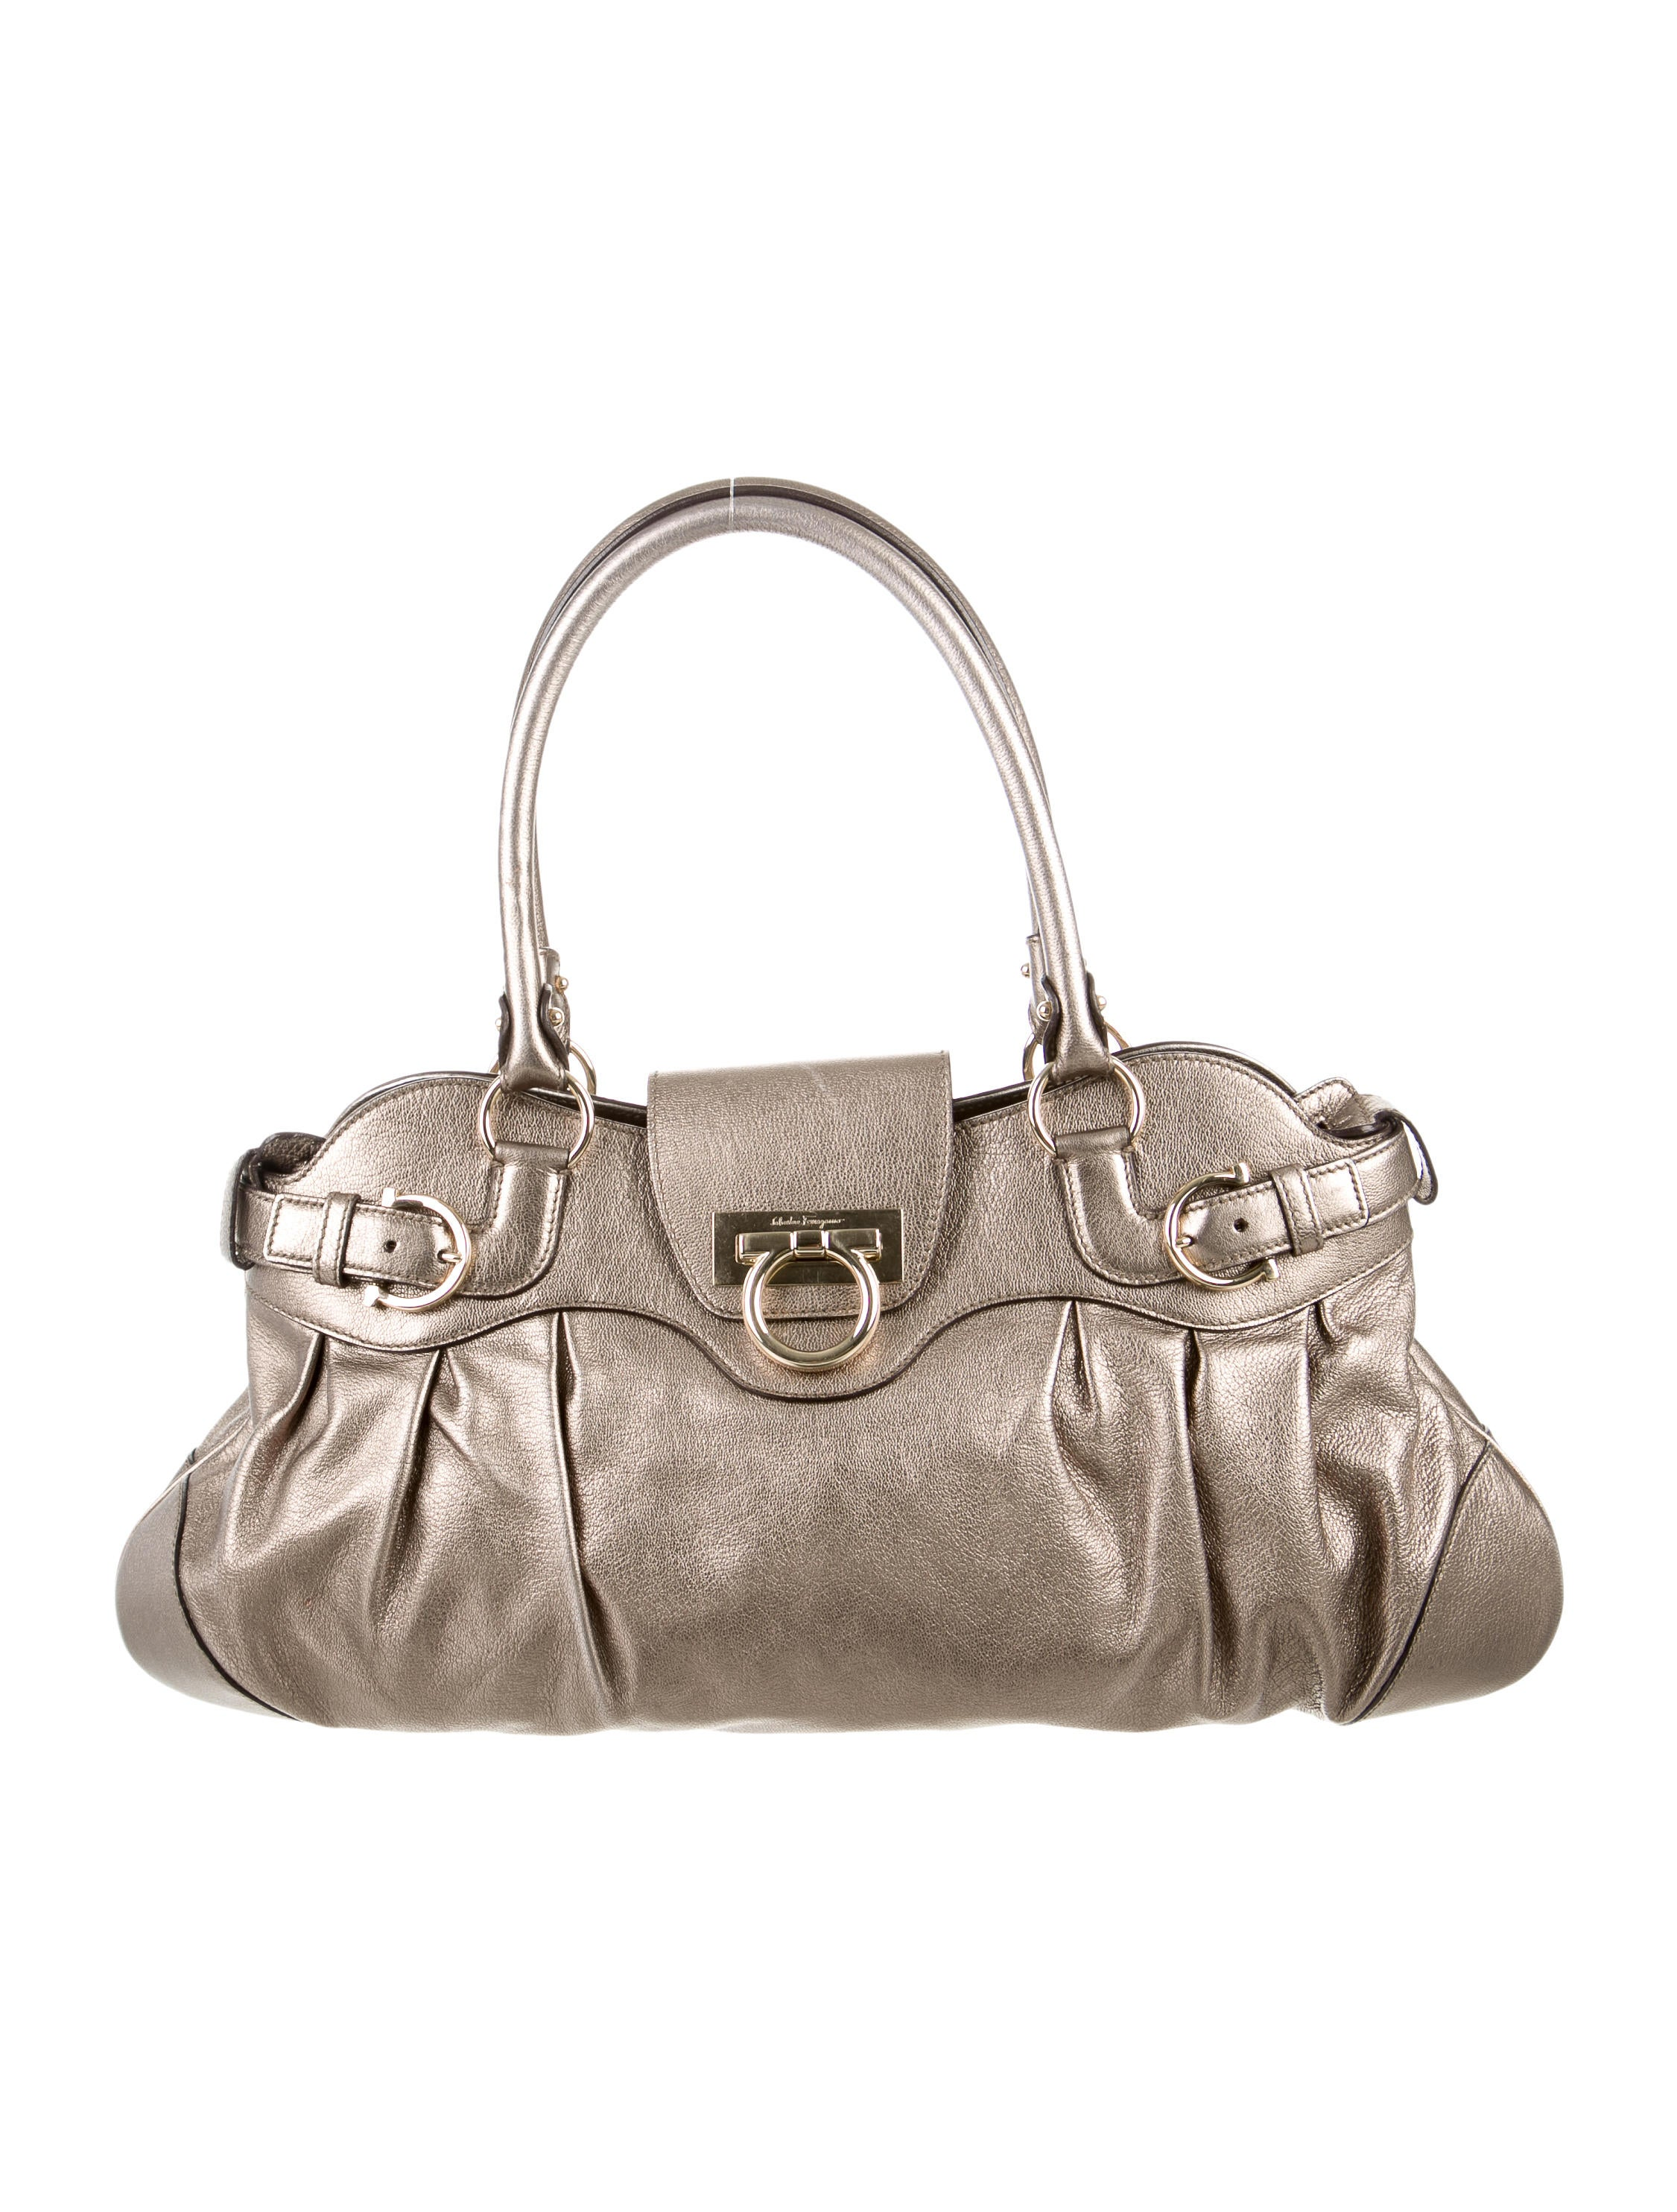 Salvatore Ferragamo Metallic Marisa Bag - Handbags - SAL39007   The ... f5e8bf2f8b